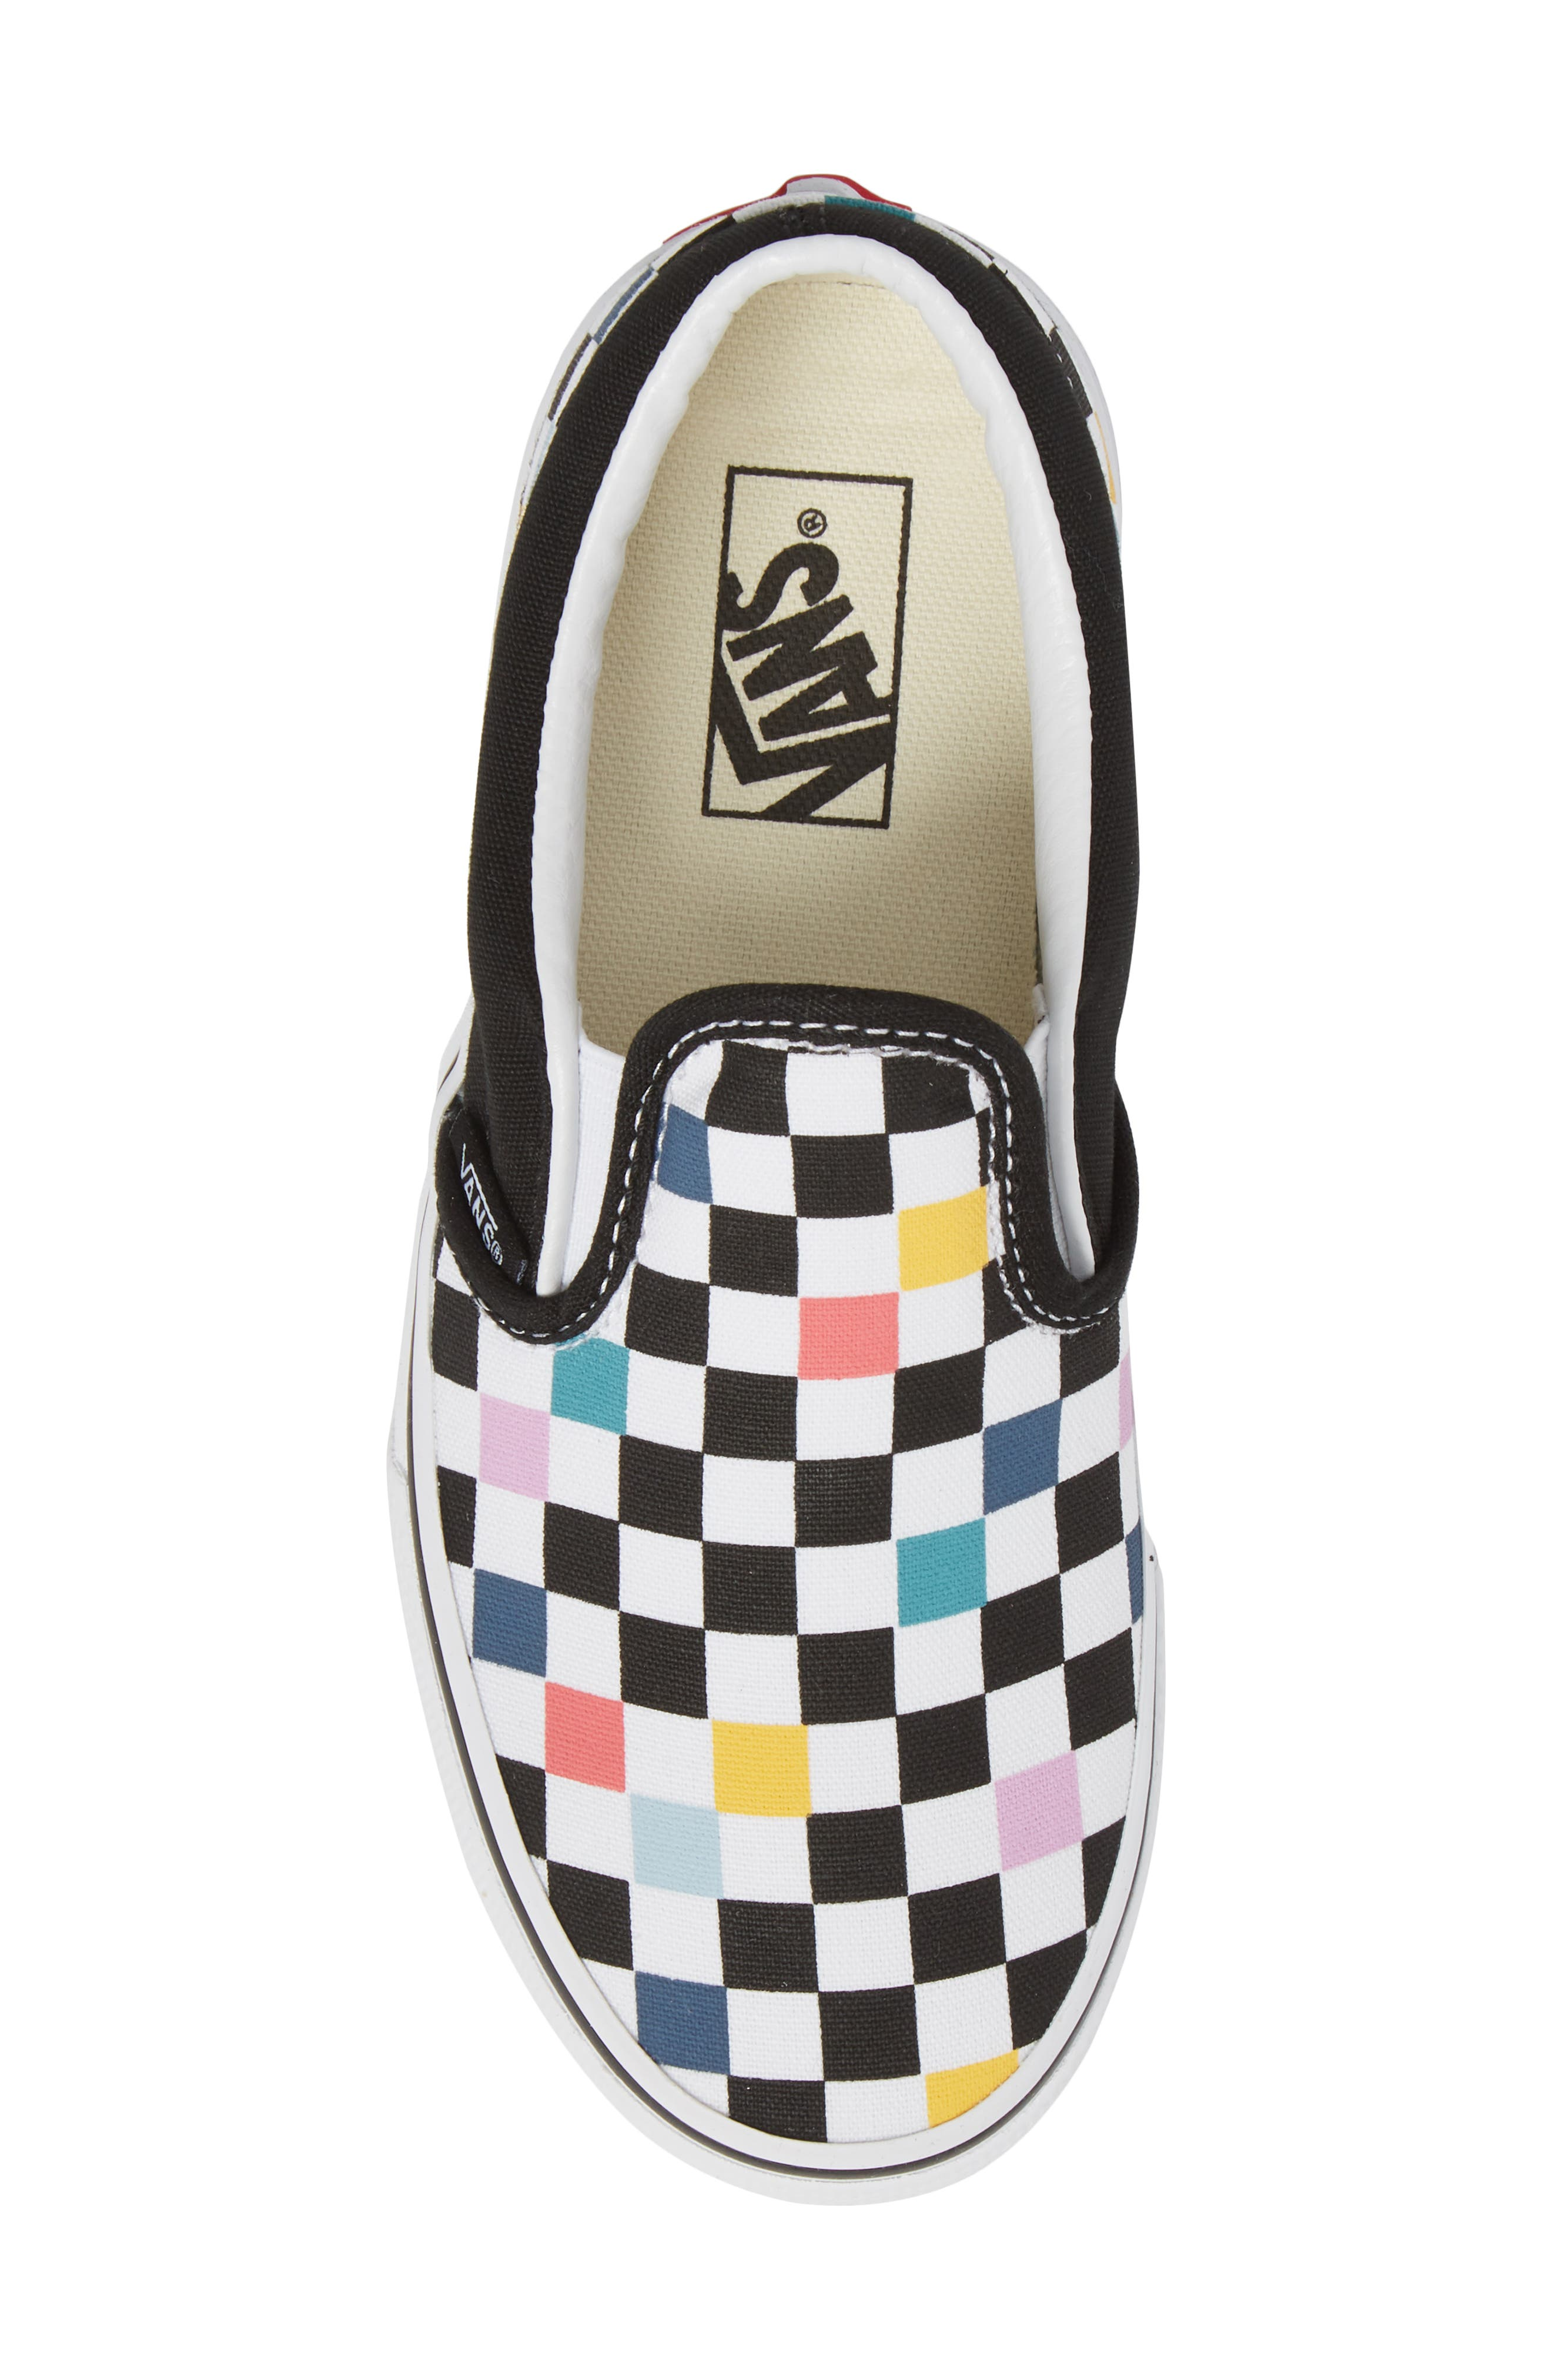 Party Check Slip-On Sneaker,                             Alternate thumbnail 5, color,                             Party Checker Multi/ Black